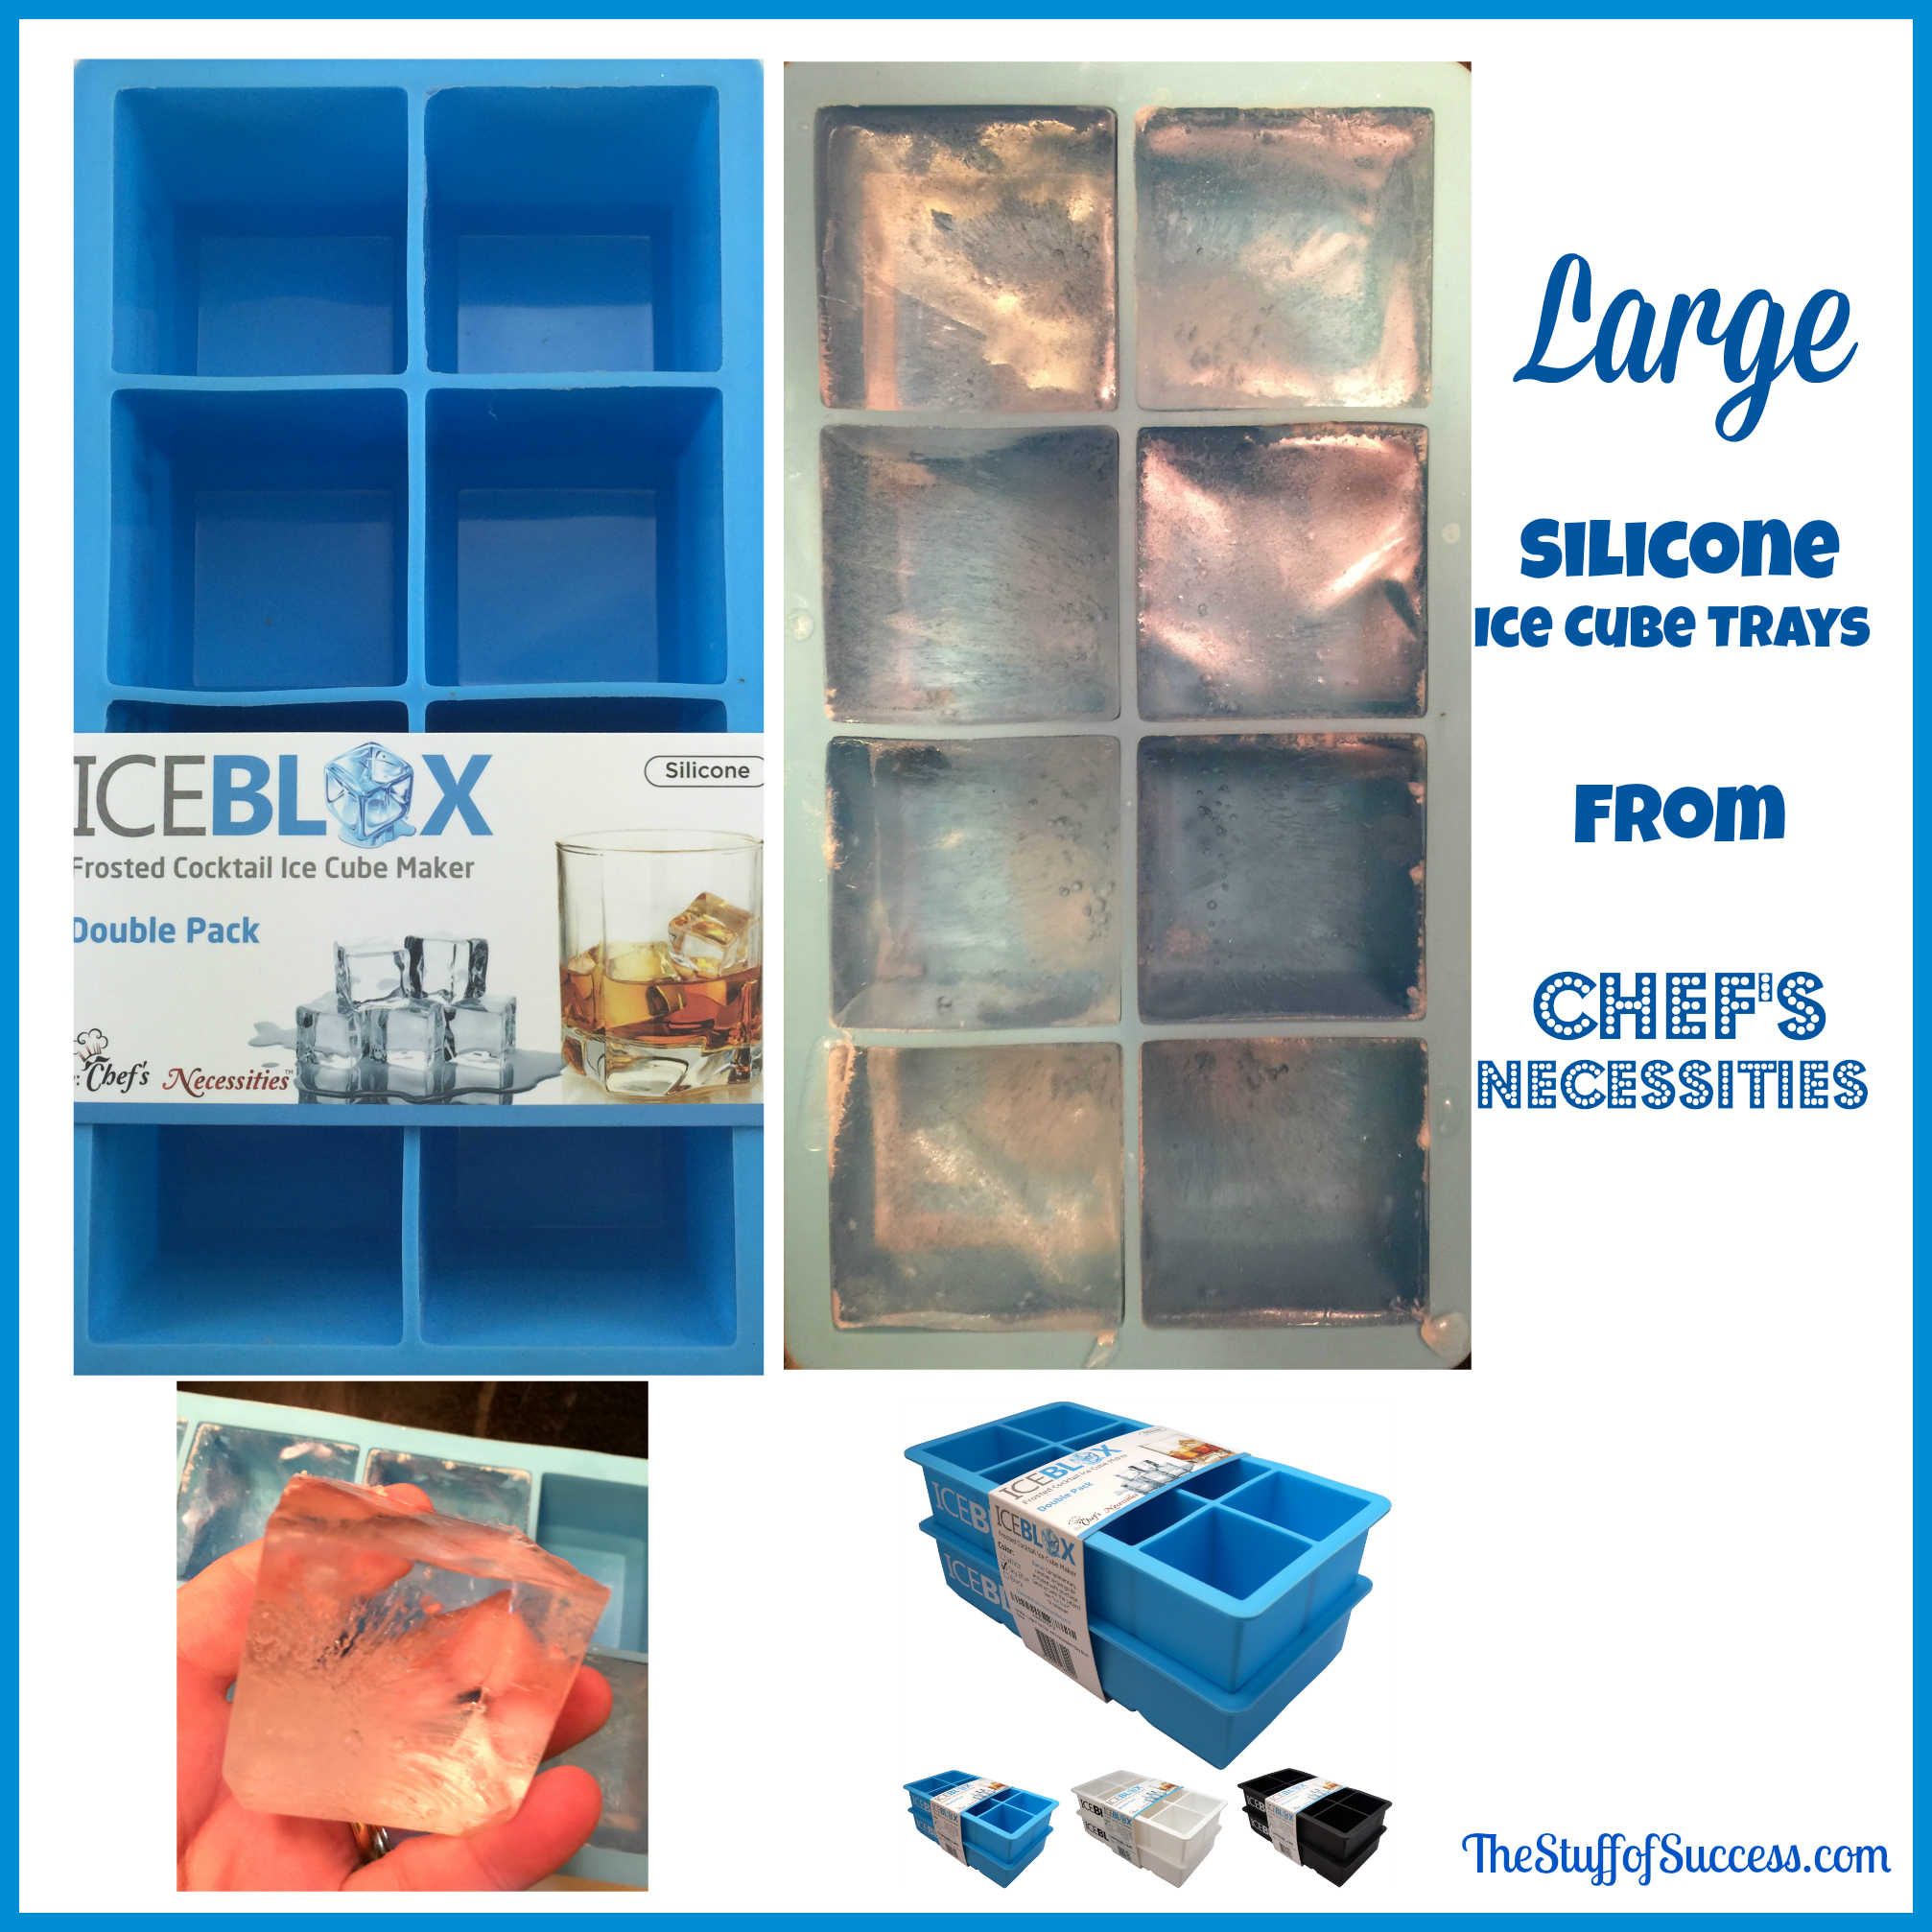 Large silicone ice cube trays chefs necessities